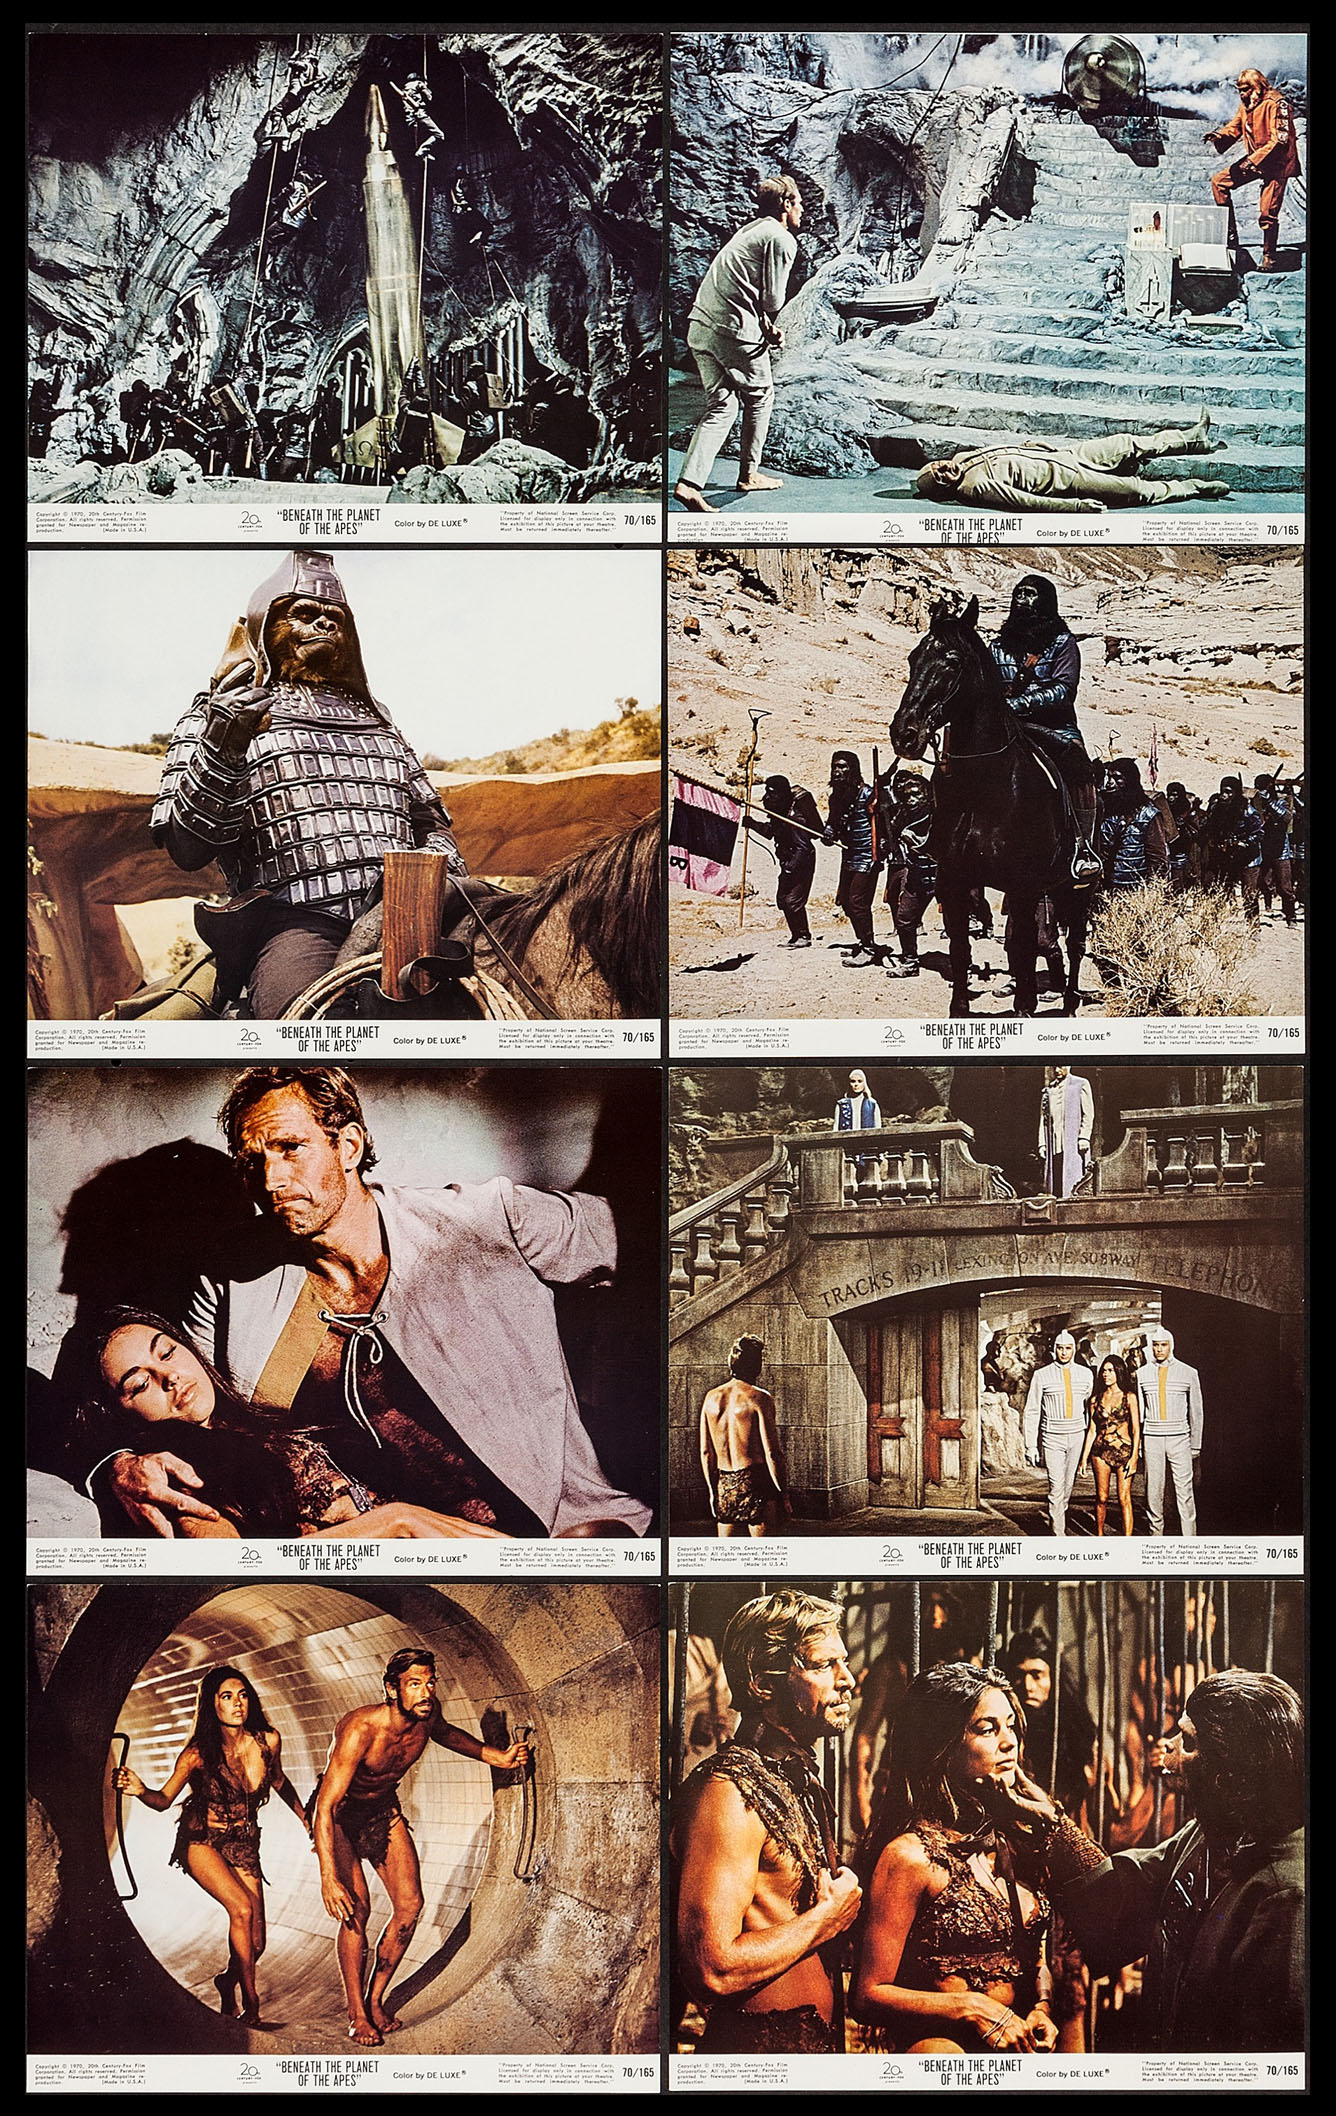 BENEATH THE PLANET OF THE APES @ FilmPosters.com